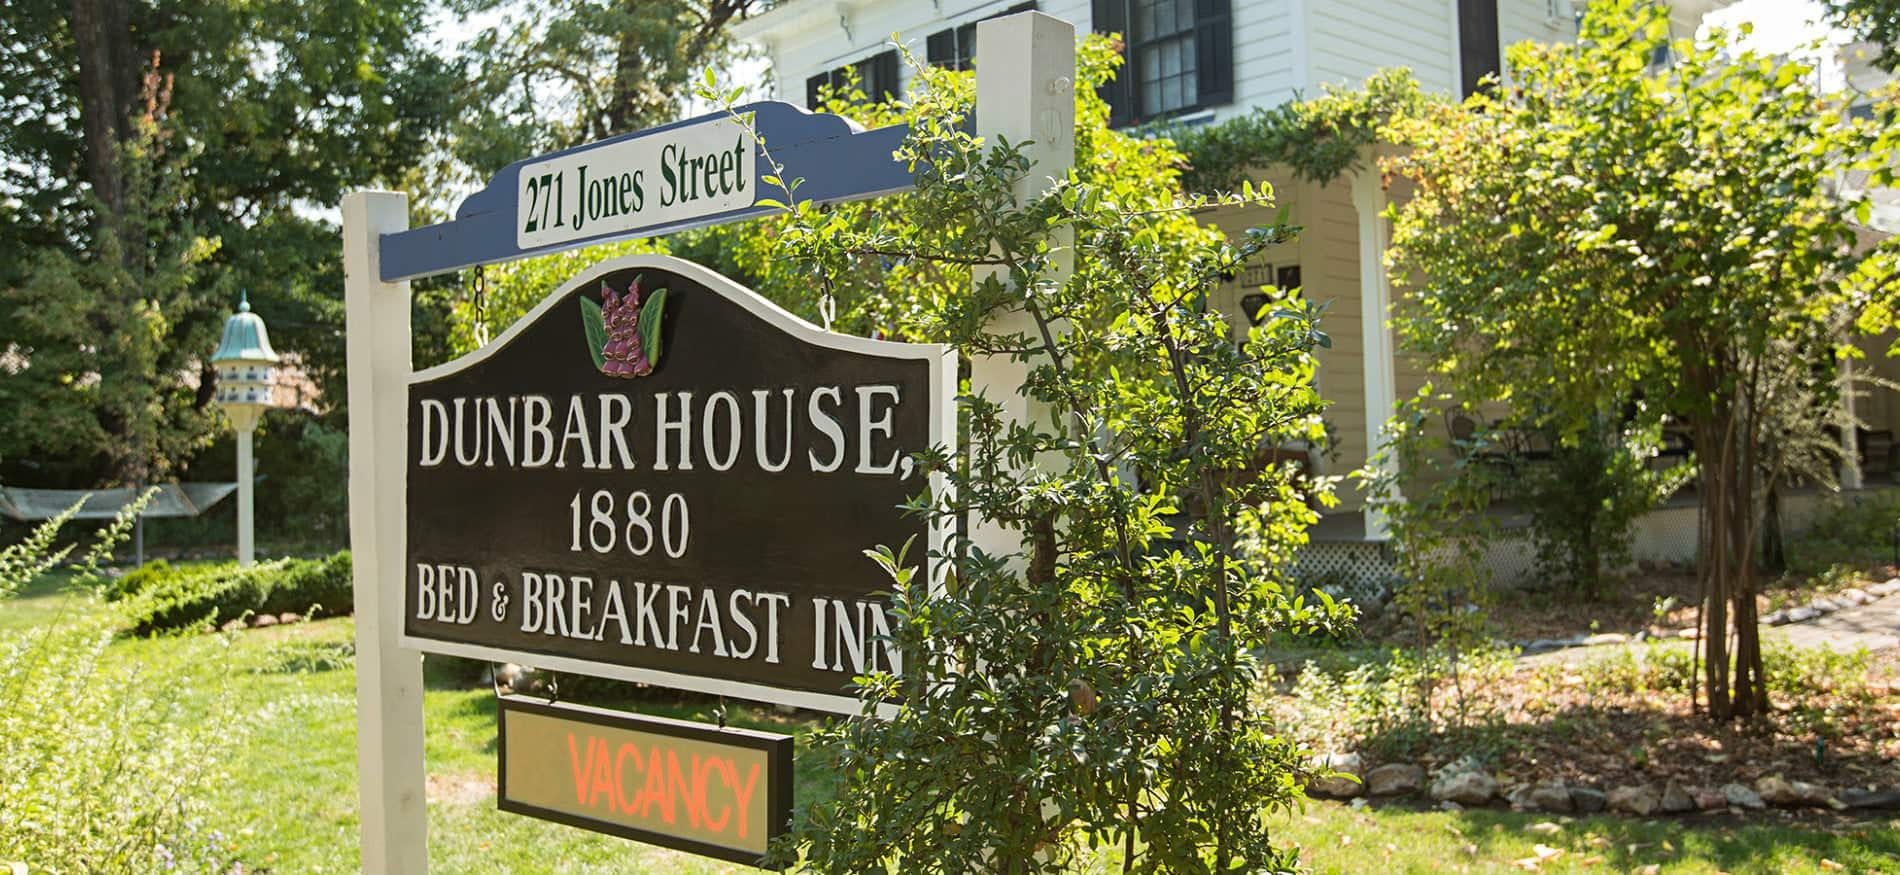 Close-up view of Dunbar House 1880 vacancy sign surrounded by greenery